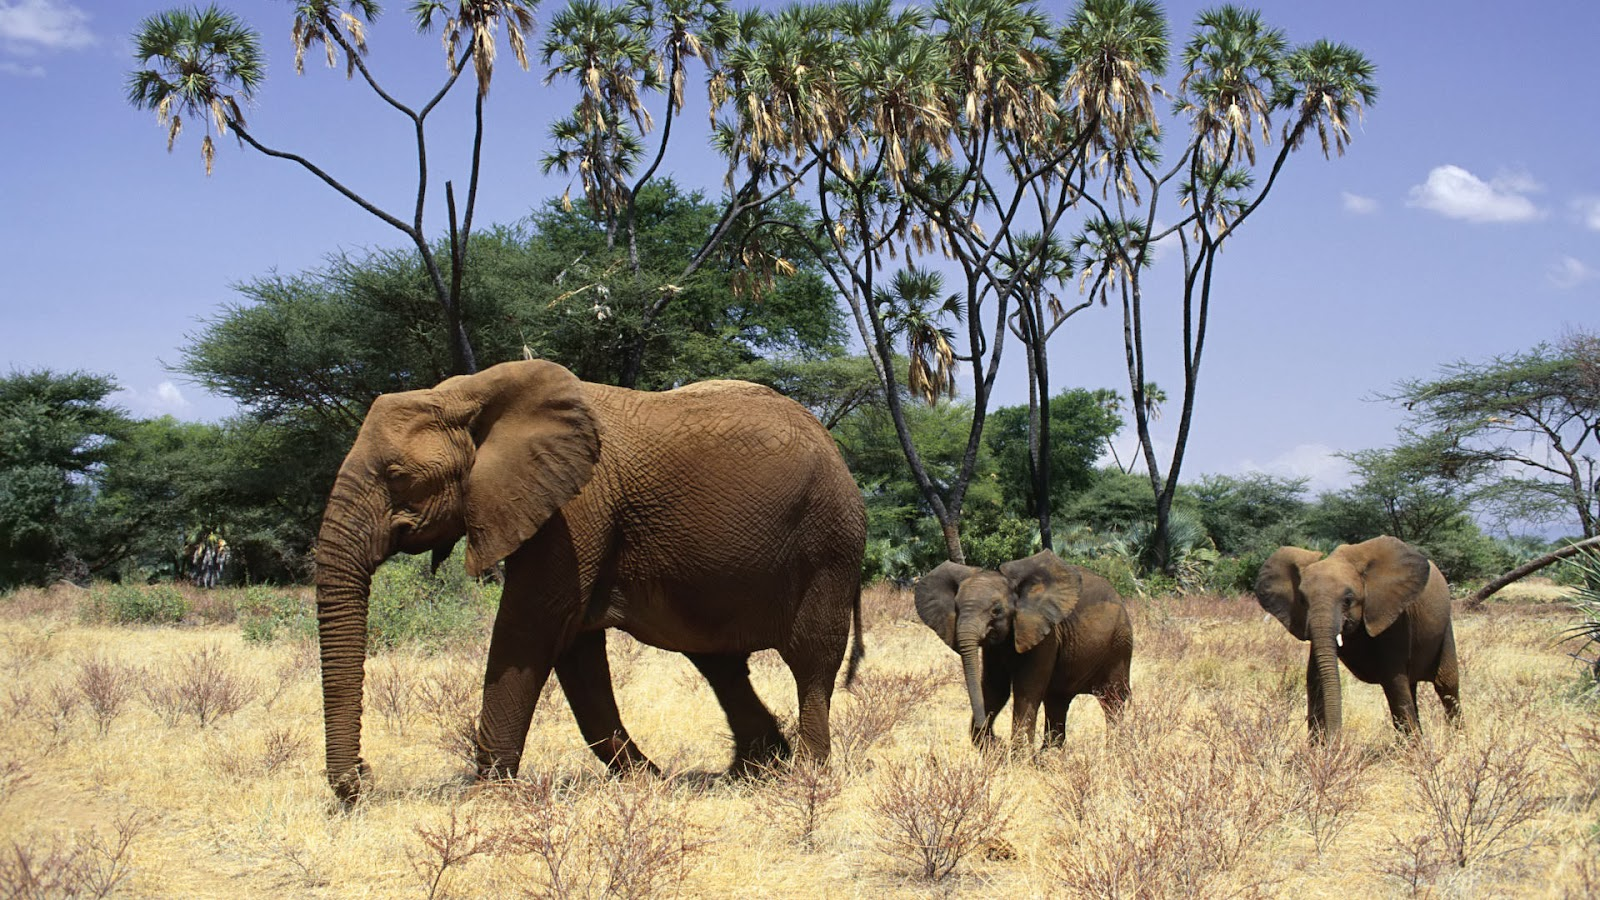 Beautiful Pictures Of Elephant In Hd: Beautiful African Animals Safaris: Beautiful African Red